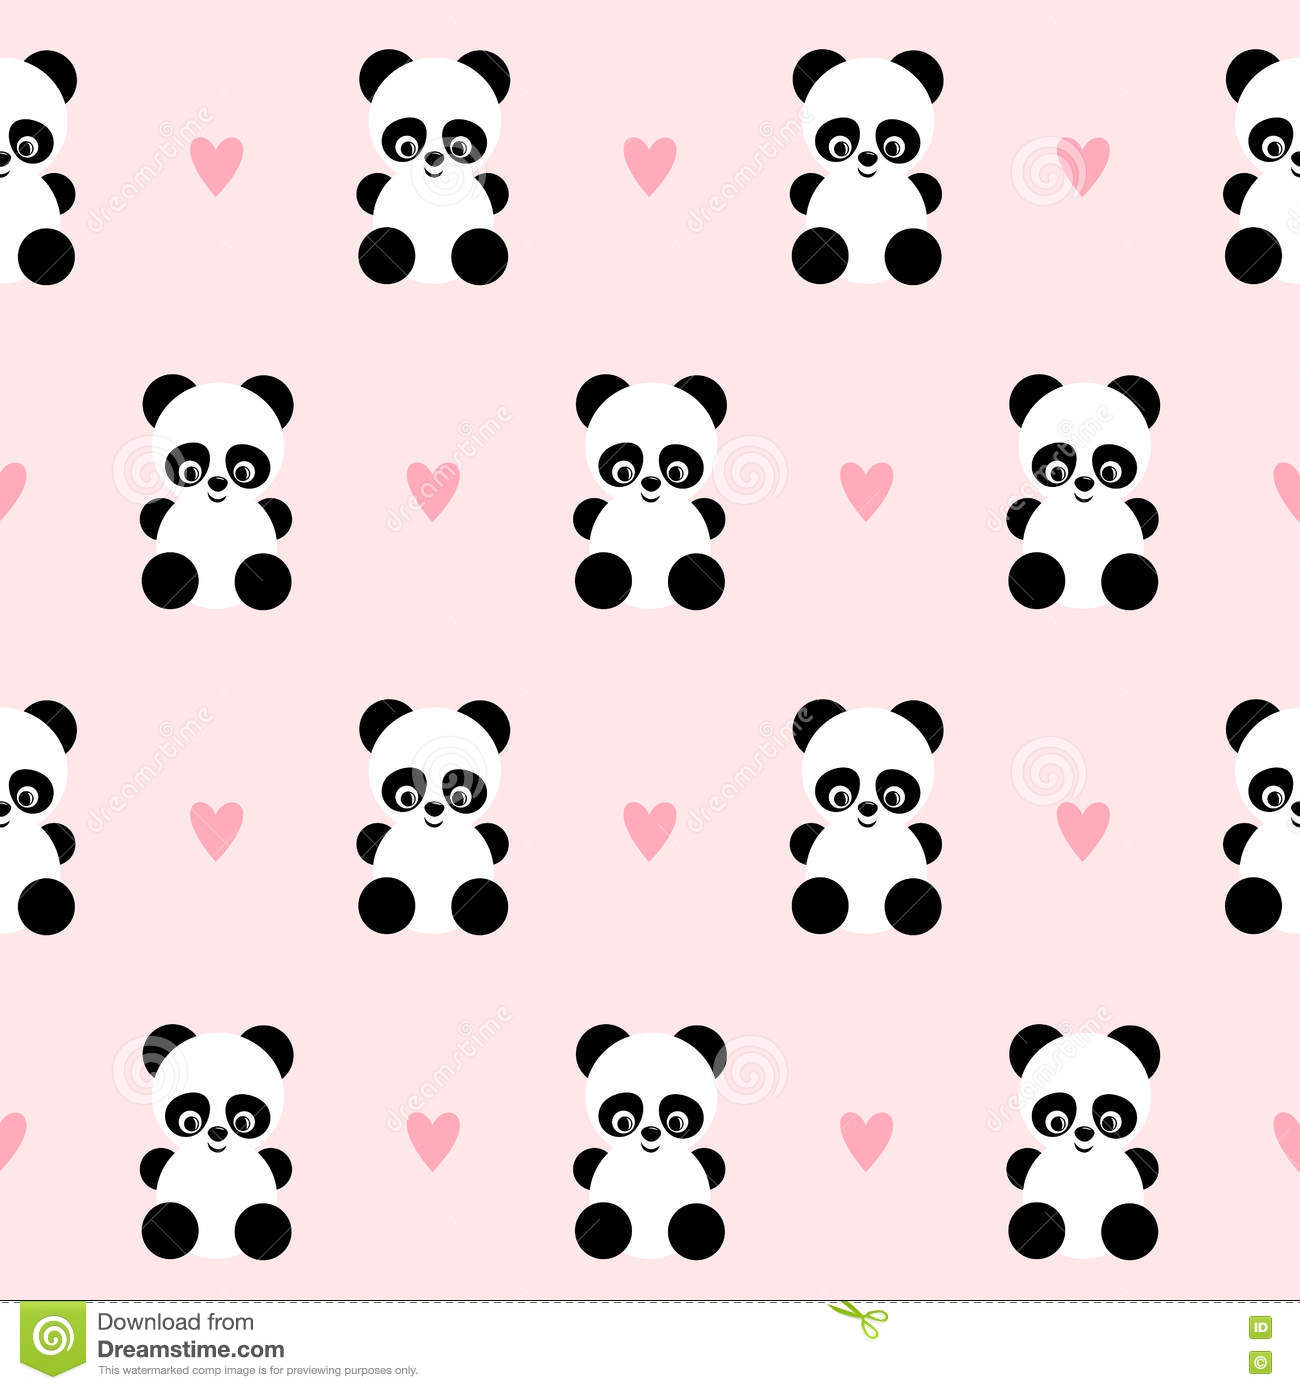 Pink Girl Cartoon Wallpaper Panda With Hearts Seamless Pattern On Pink Background